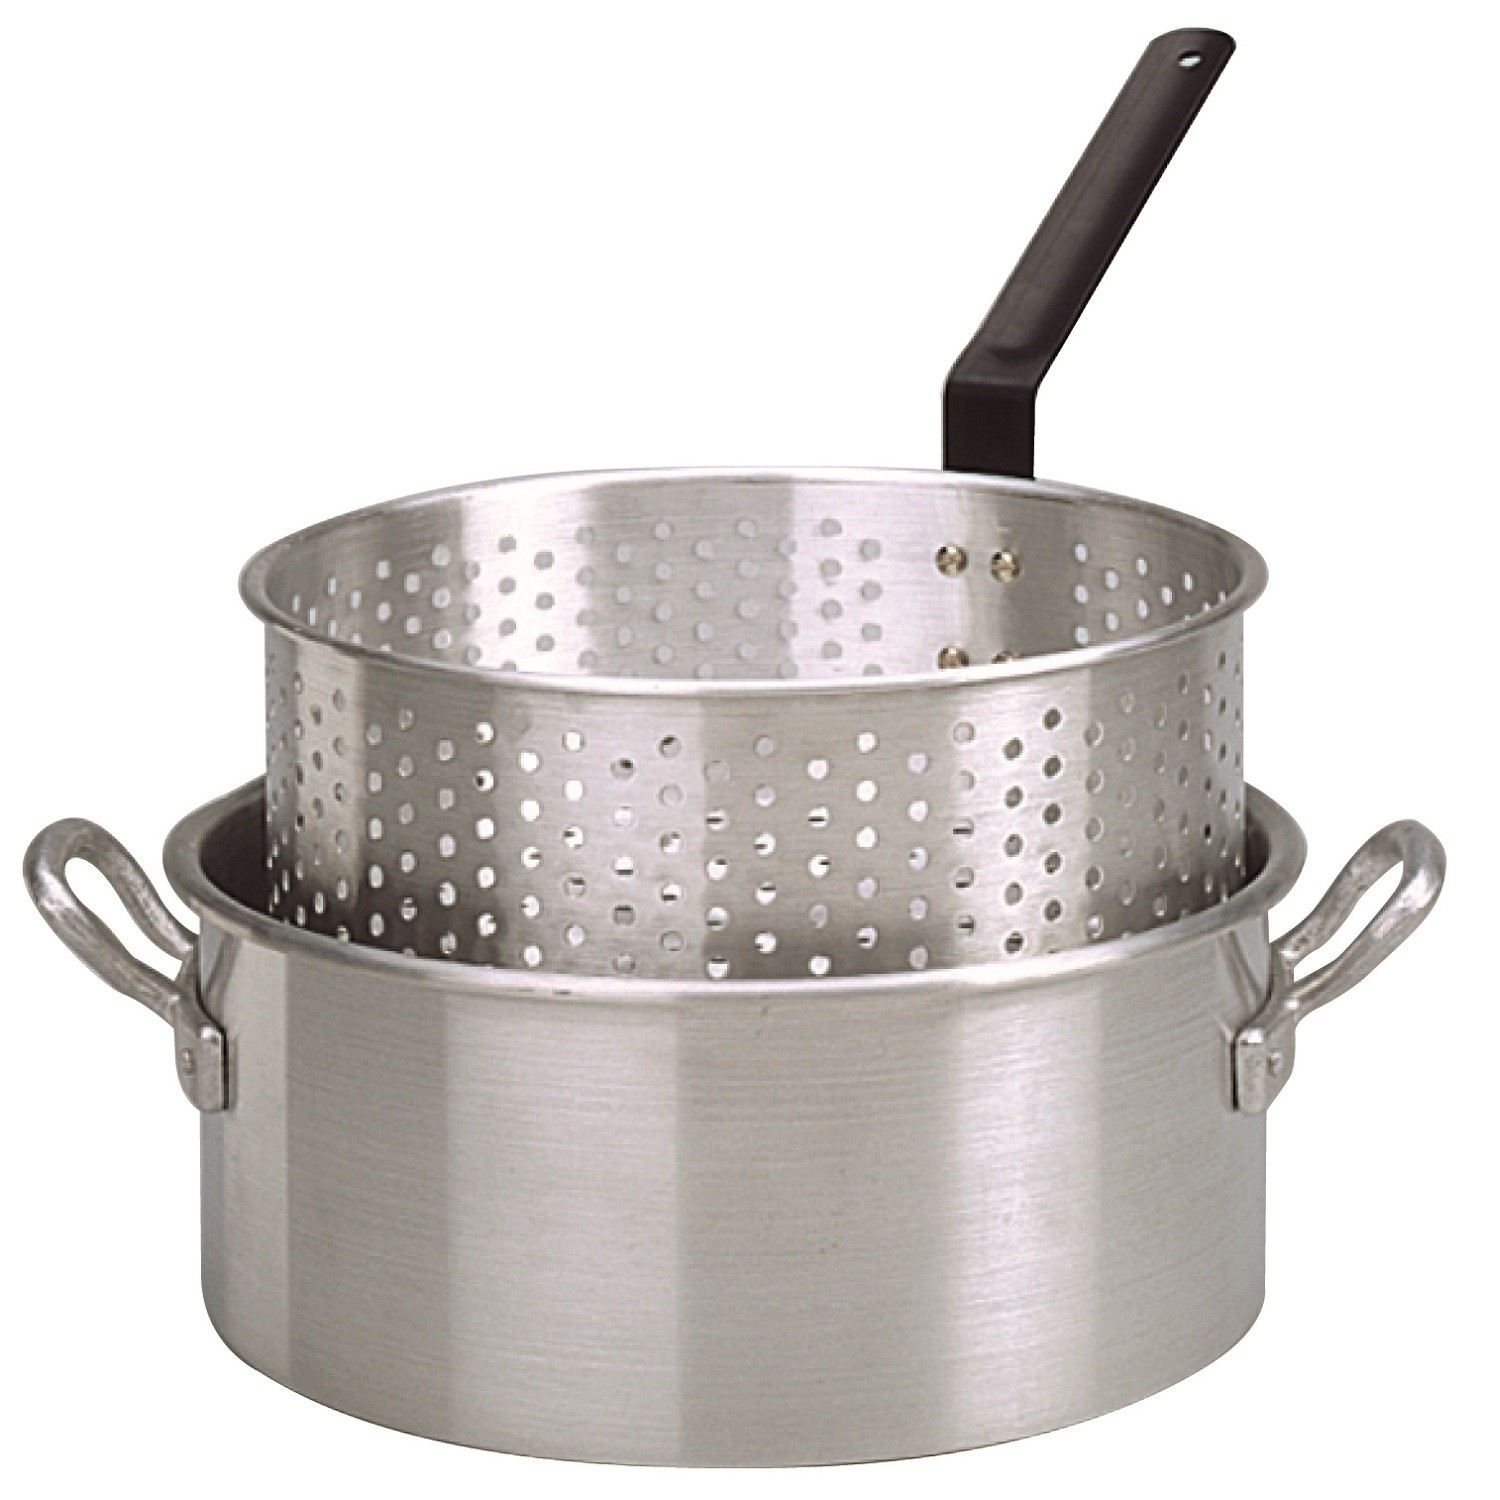 King Kooker Aluminum Fry Pan with Two Handles - 10 qt.